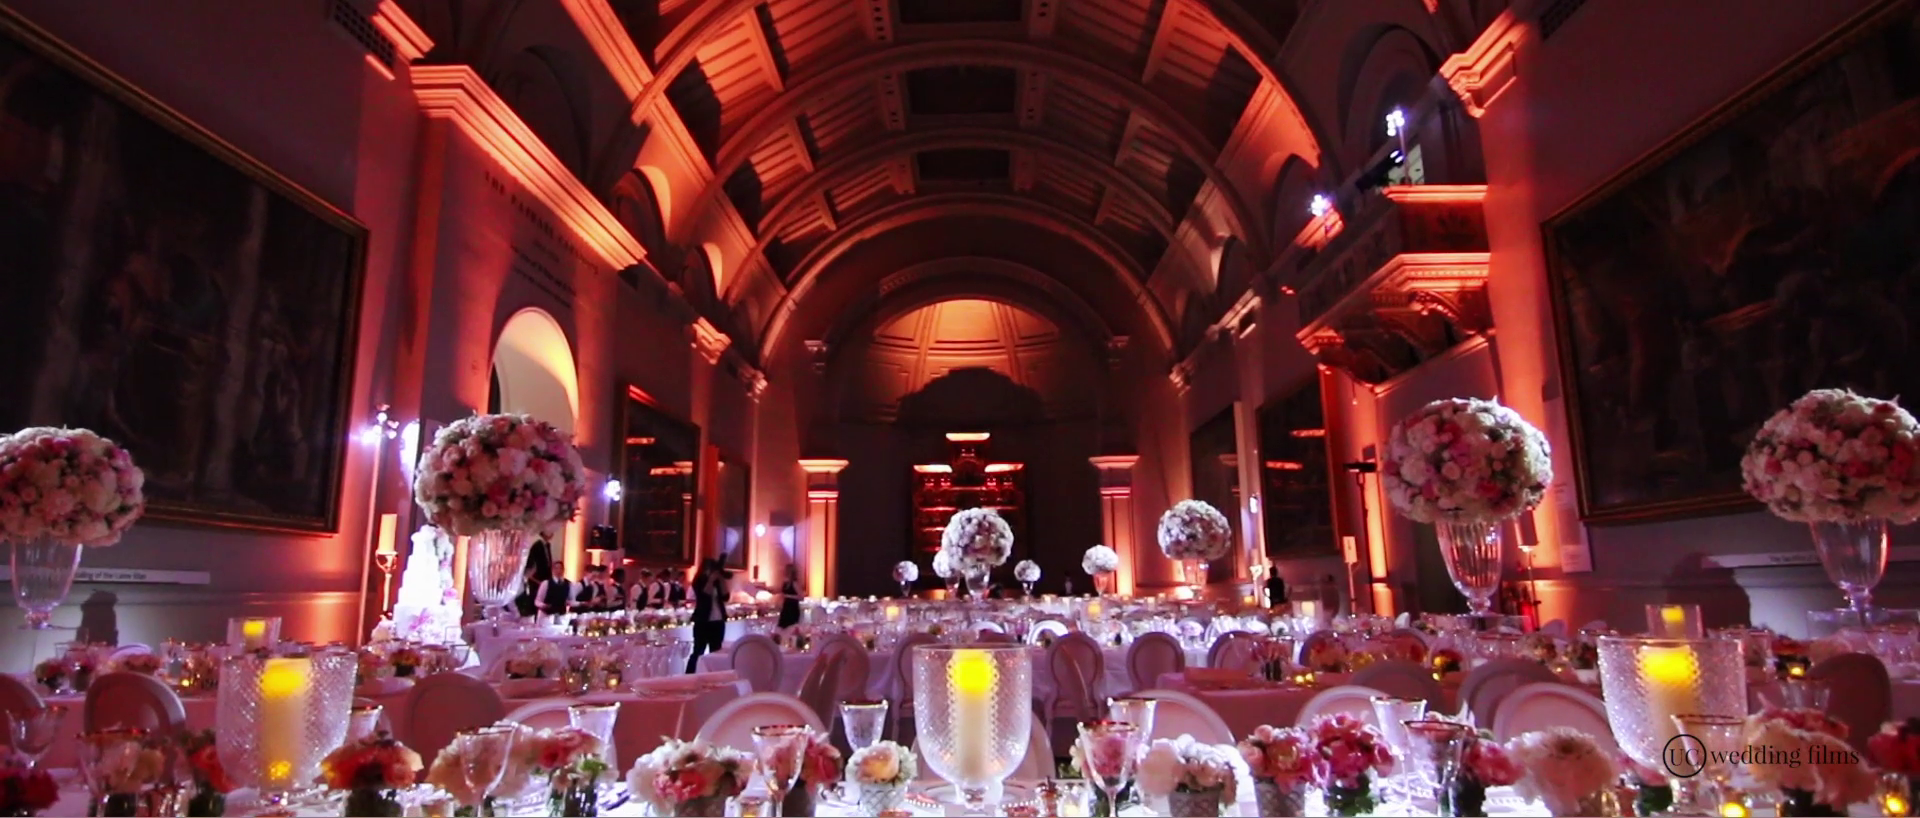 Wedding Videography Victoria & Albert Museum